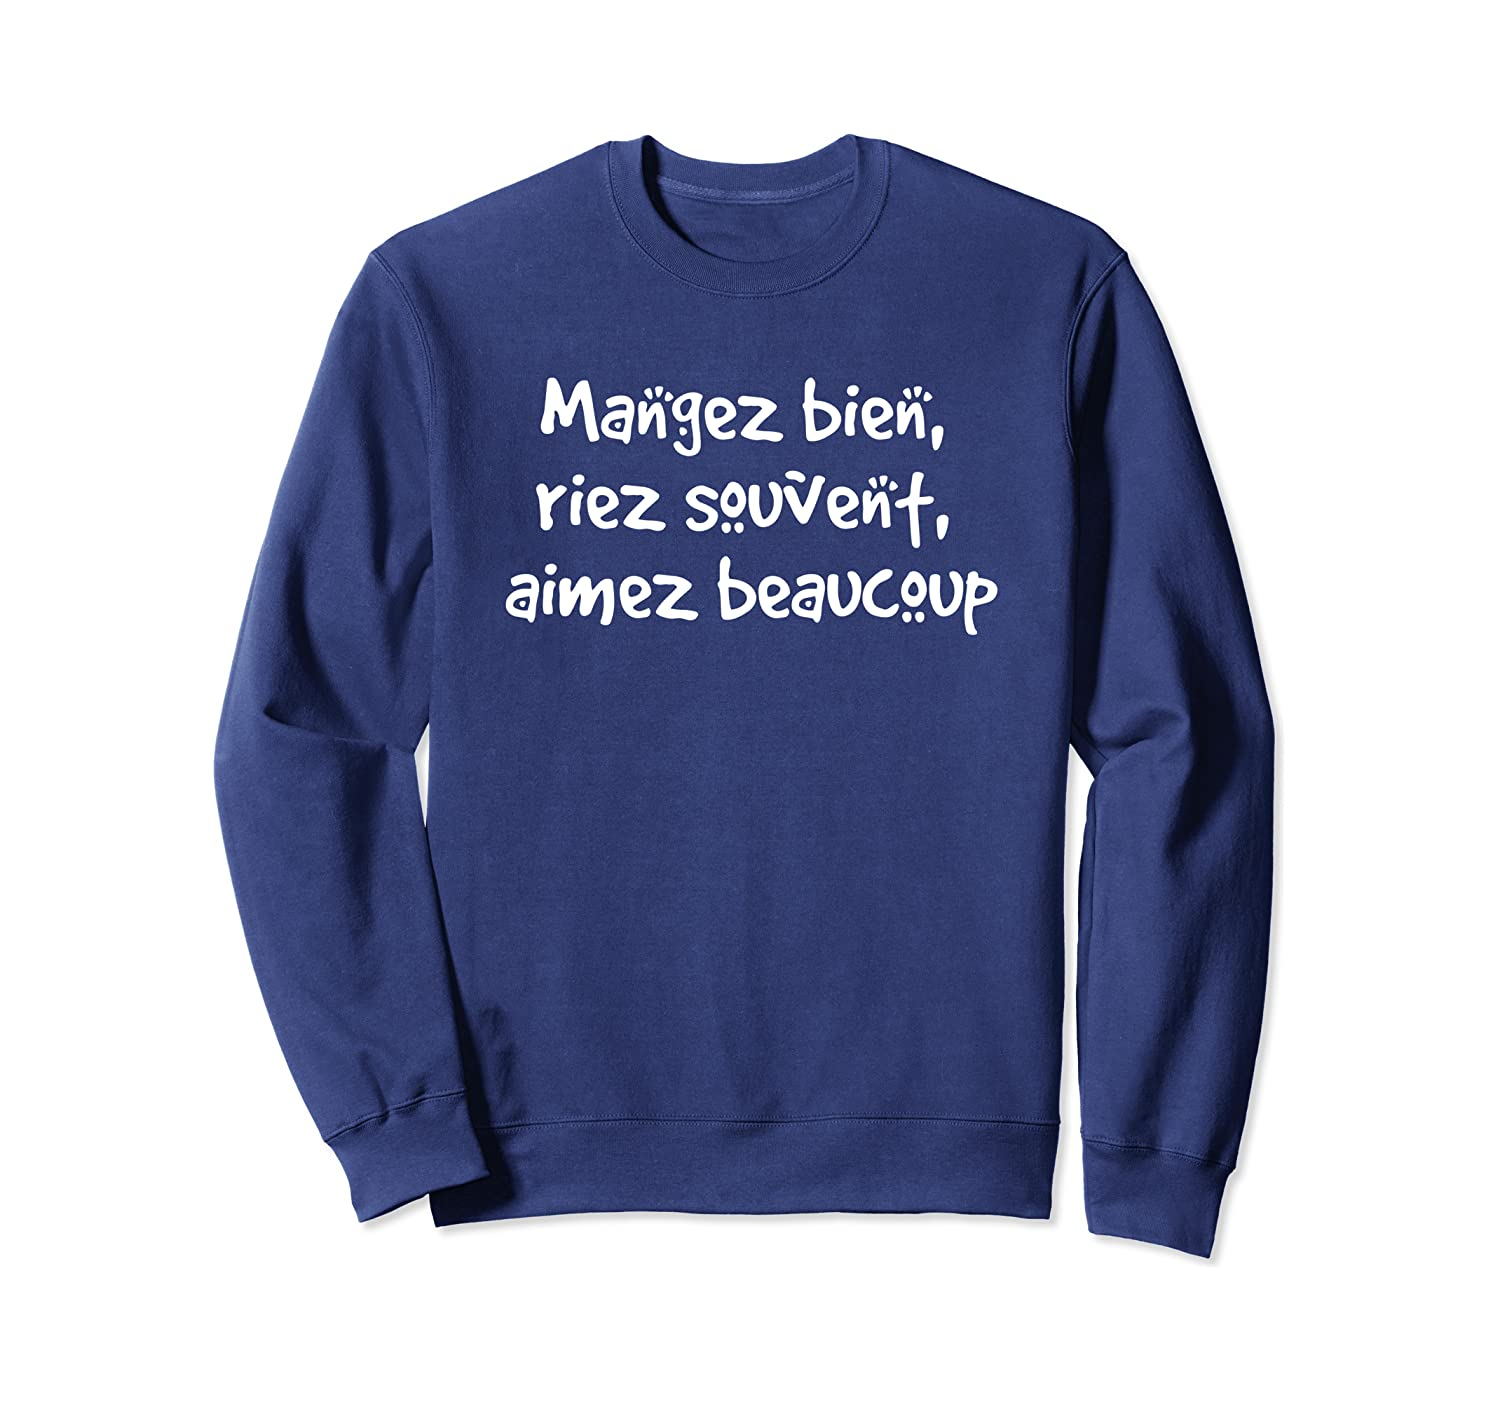 Popular French Saying Funny Holiday Gift Sweatshirt